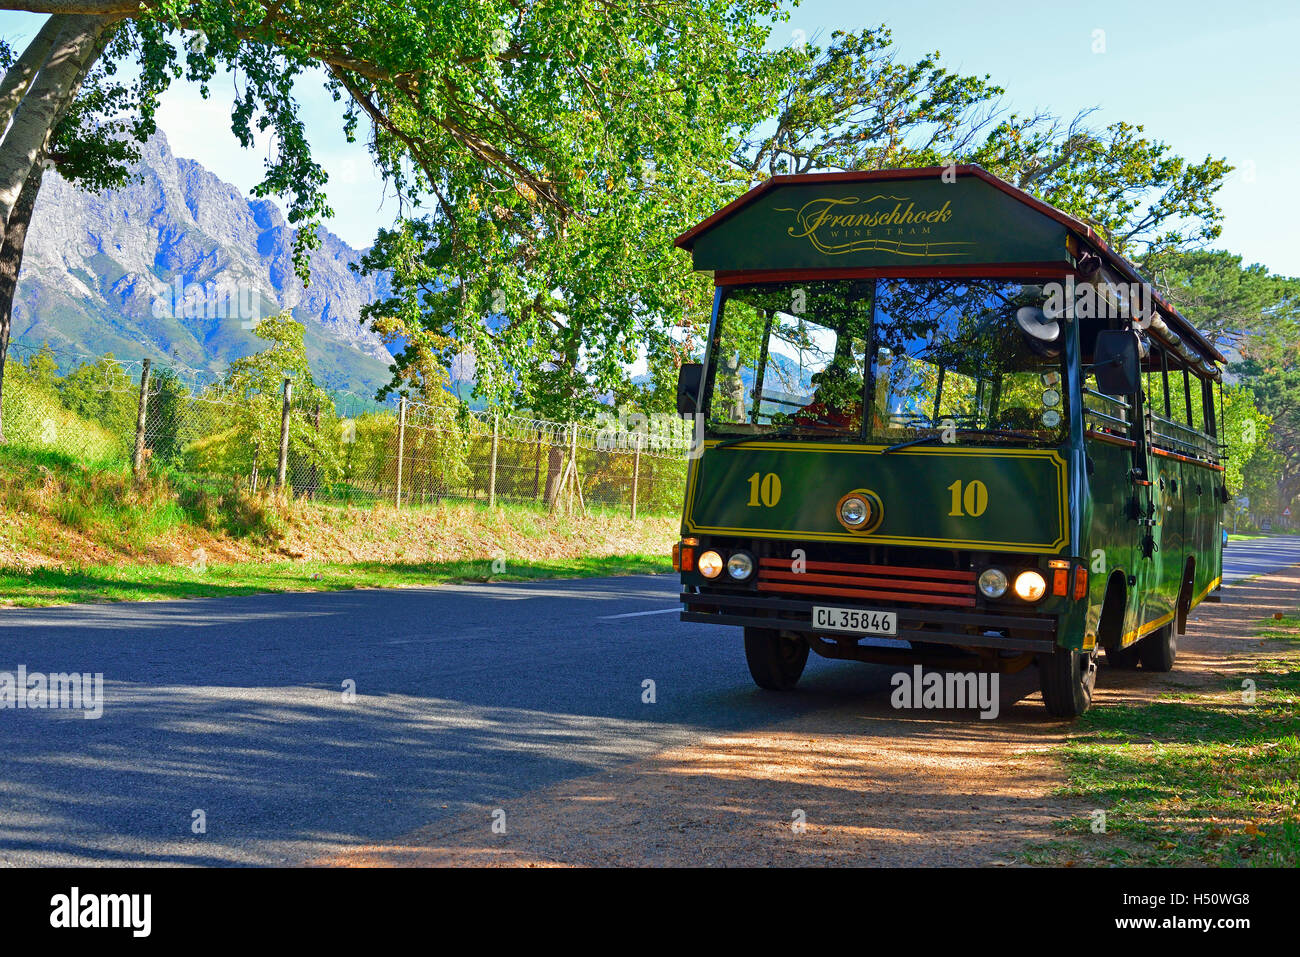 Franschhoek Wine Tour 'tram'(based on the actual tram in Franschhoek ) used to take tourist around the neighbourhood's - Stock Image